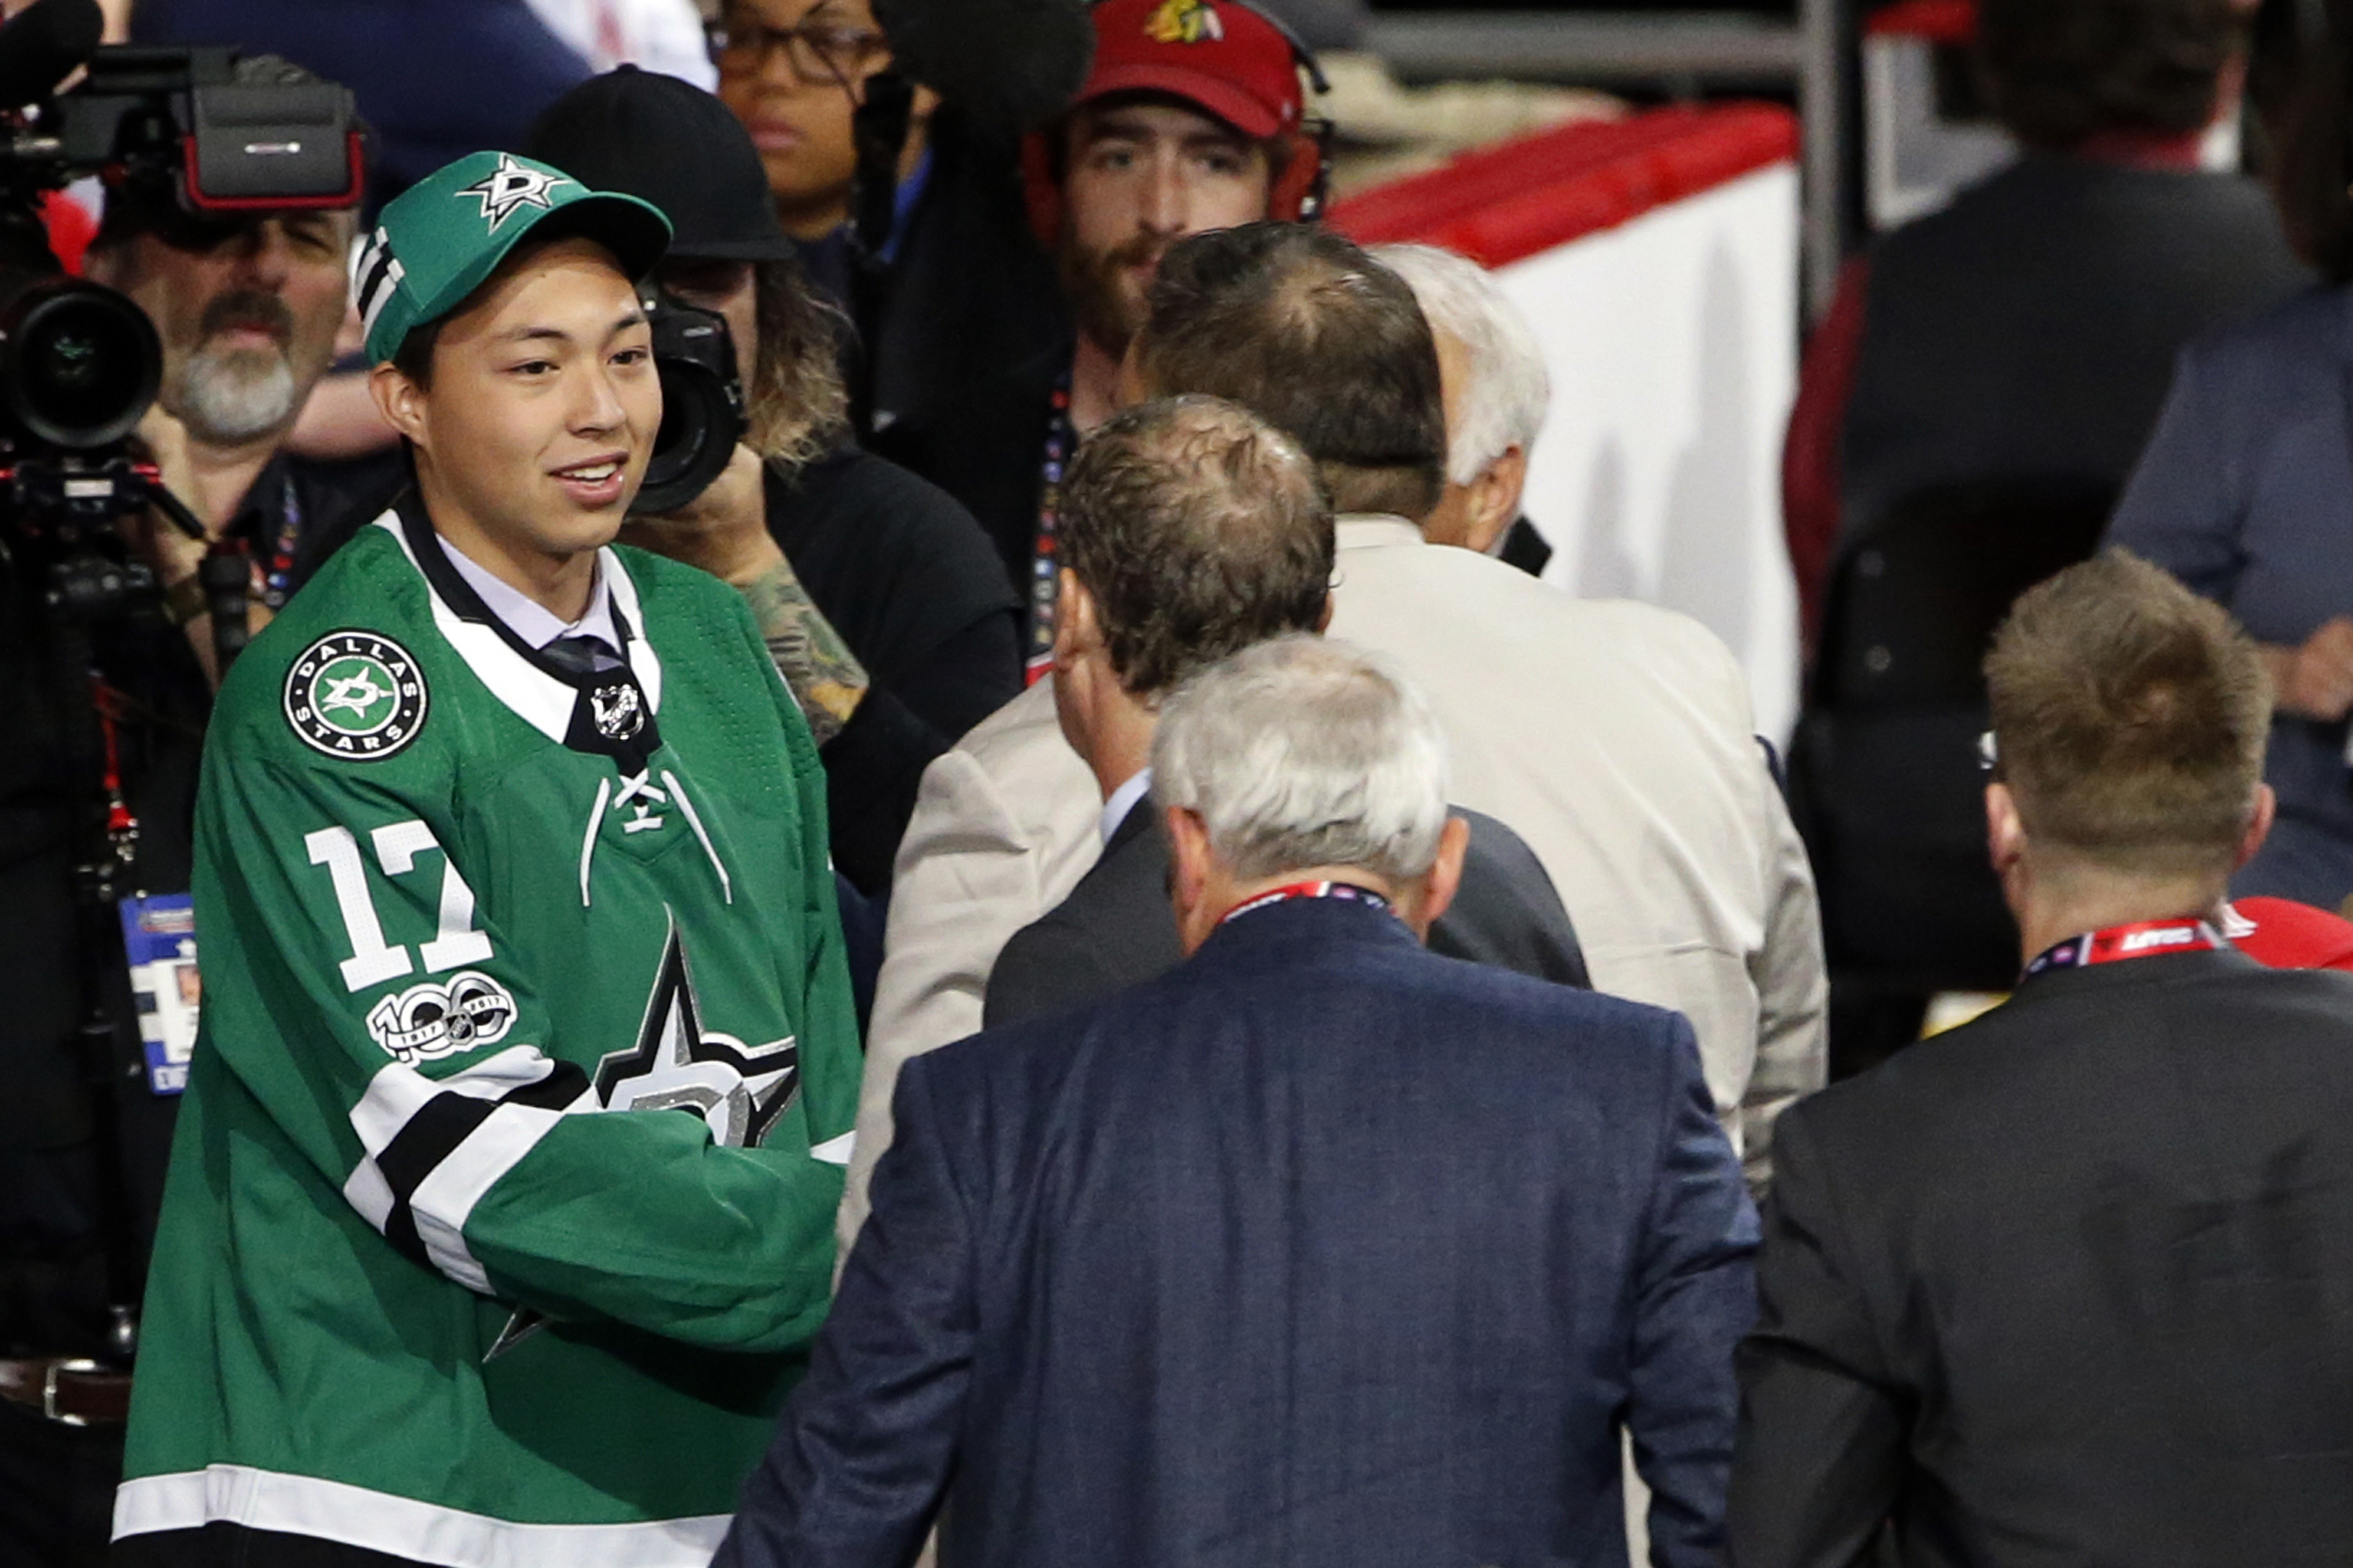 Image: Jason Robertson  talks with representatives from the Dallas Stars after being selected by the team during the second round of the 2017 NHL hockey draft